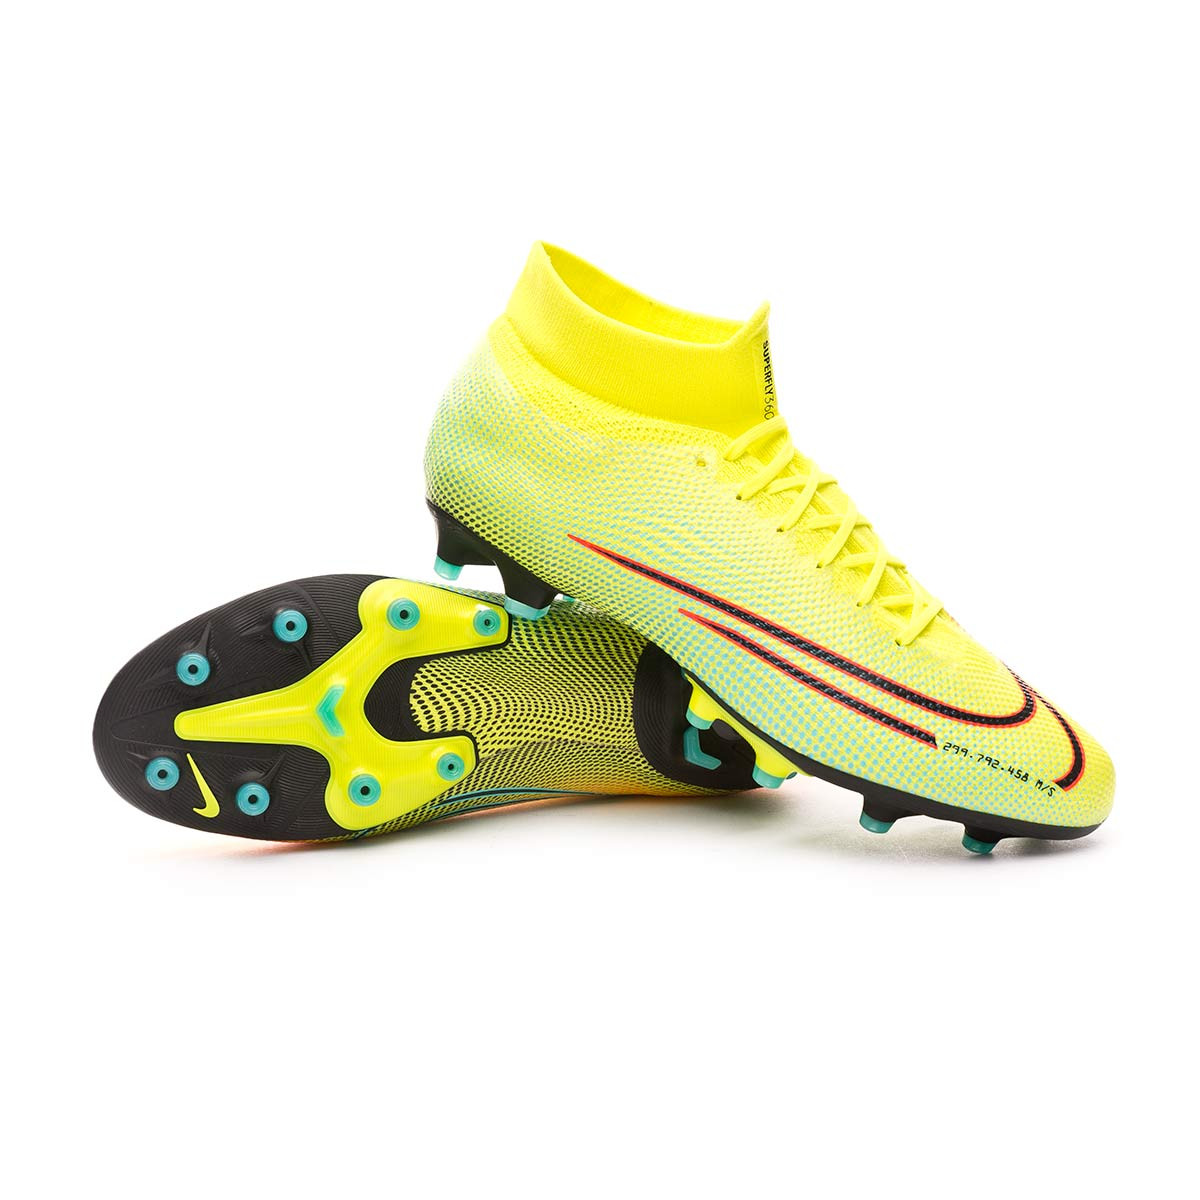 Distinguir dentro Ocultación  Football Boots Nike Mercurial Superfly VII Pro MDS 2 AG-PRO Lemon  venom-Black-Aurora green - Football store Fútbol Emotion